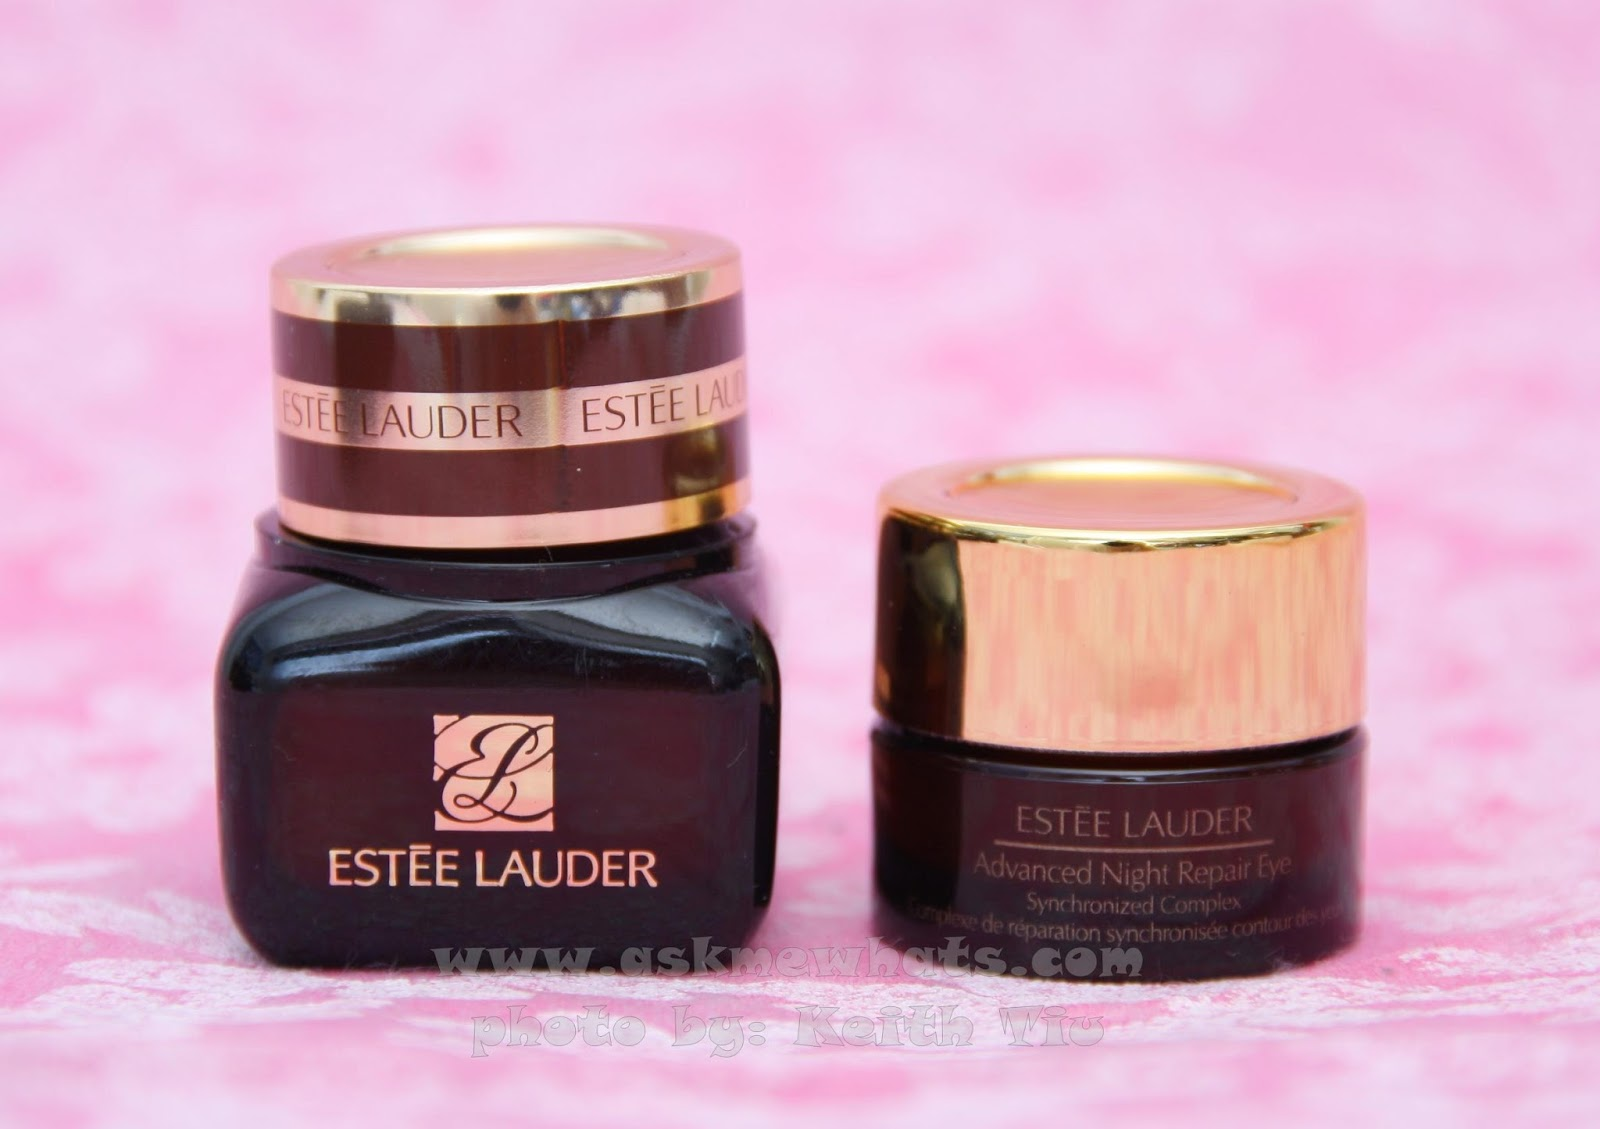 Advanced Night Repair Eye Serum Synchronized Complex II by Estée Lauder #22